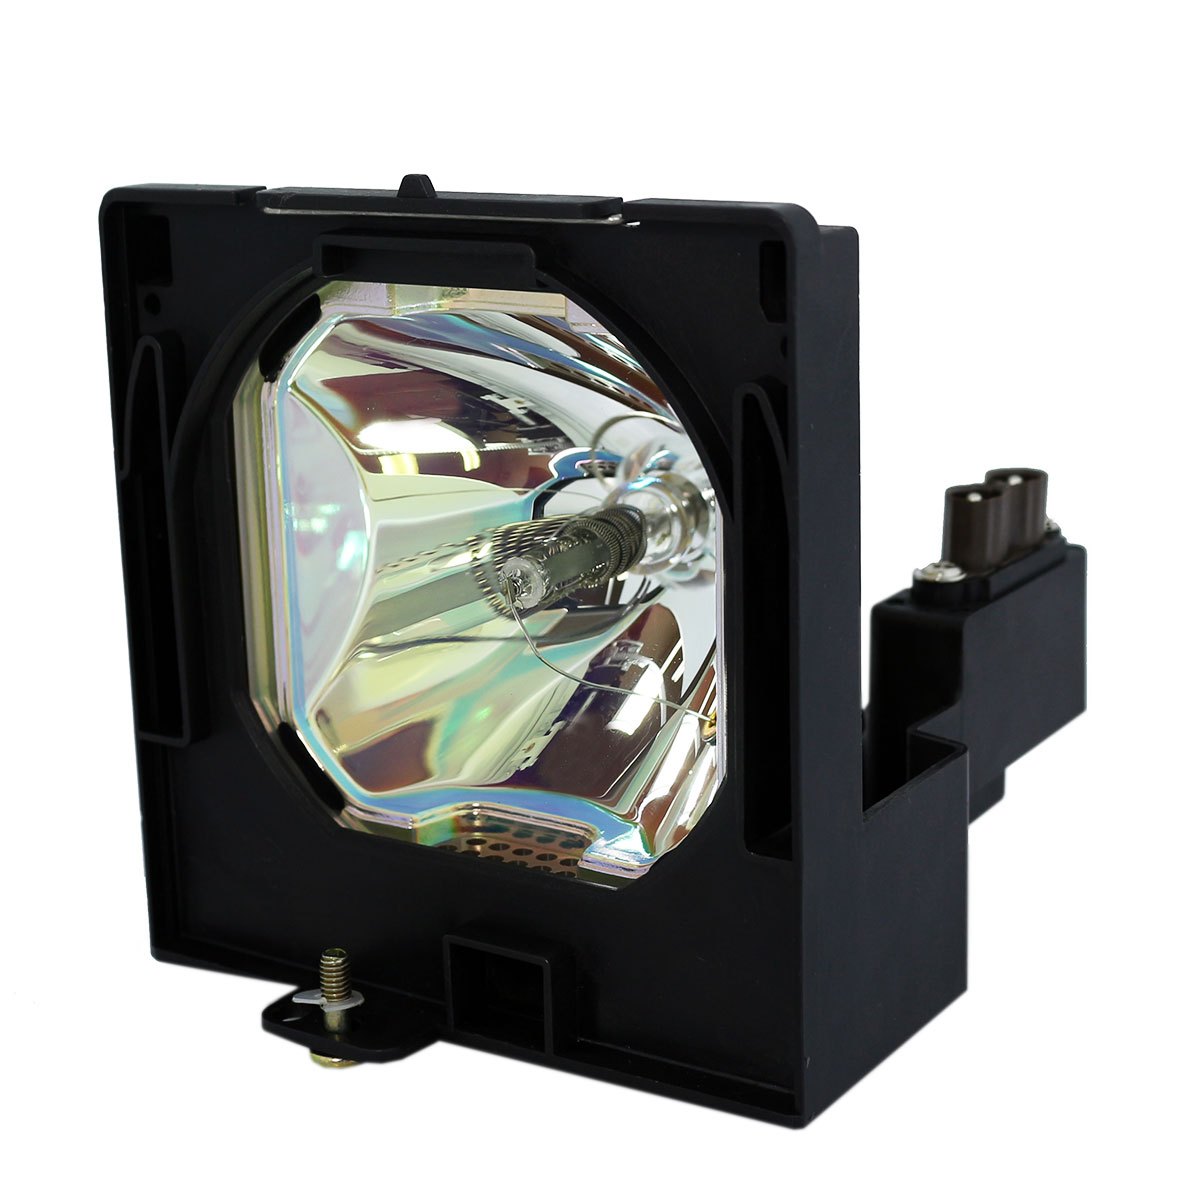 Original Ushio Projector Lamp Replacement for ASK Proxima LAMP-025 (Bulb Only) - image 5 de 5